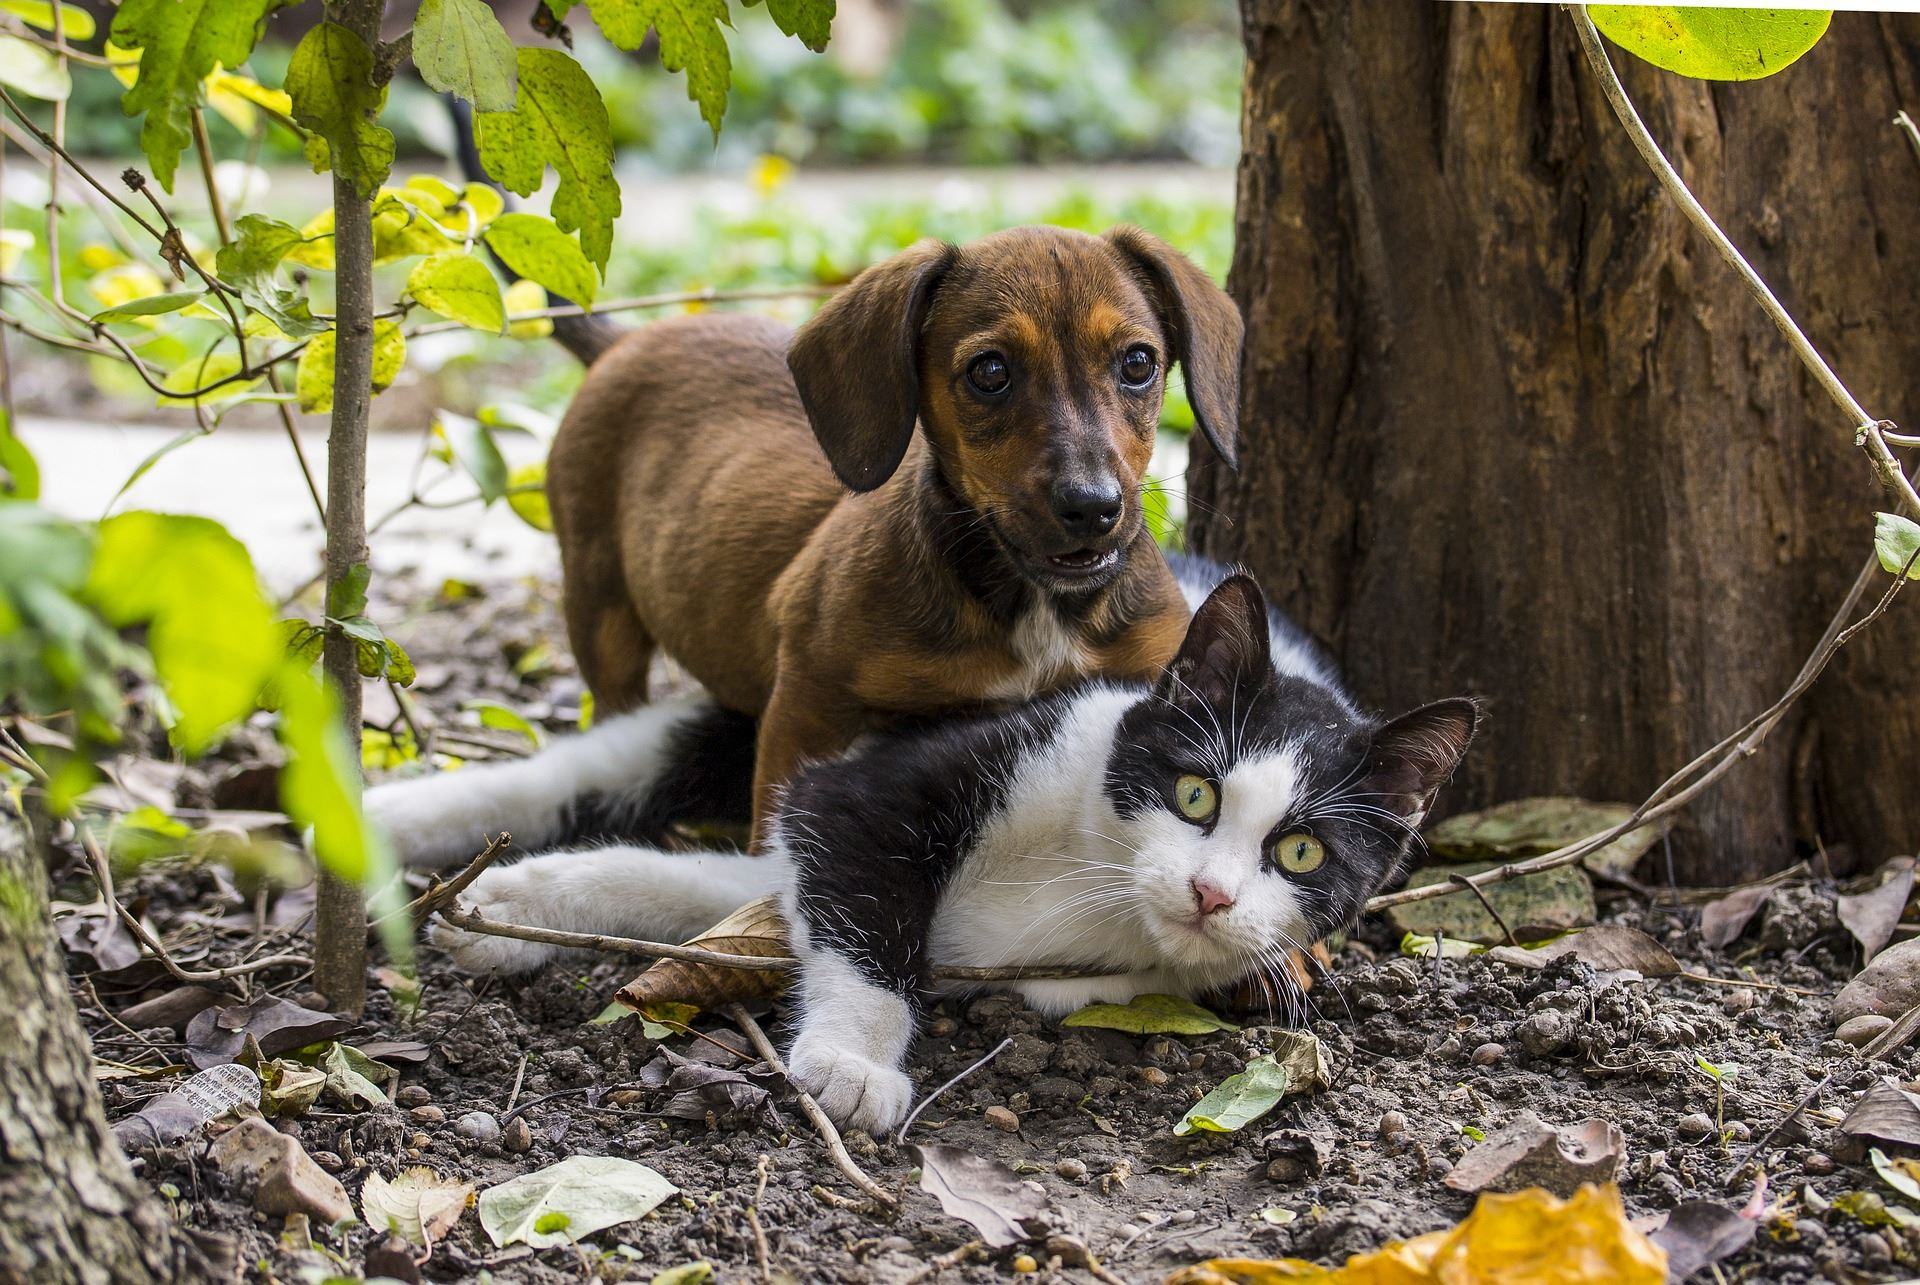 Cat and dog playing outside under a tree